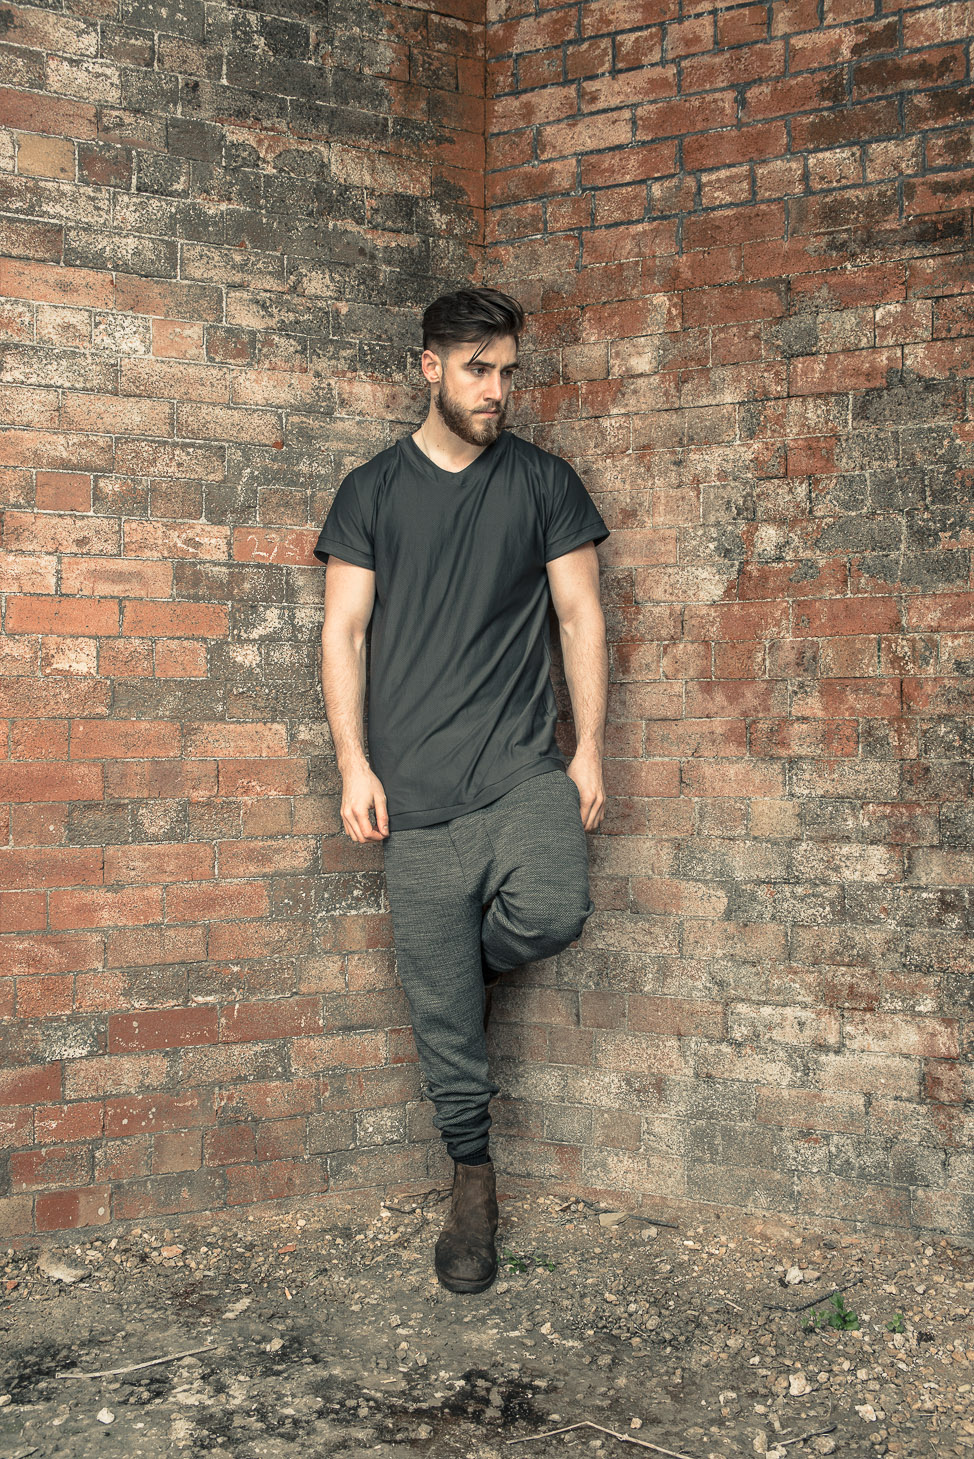 zaramia-ava-zaramiaava-leeds-fashion-designer-ethical-sustainable-tailored-minimalist-mesh-oversized-taichi-raglan-versatile-drape-grey-tshirt-top-hareem-trousers-black-grey-texture-styling-1